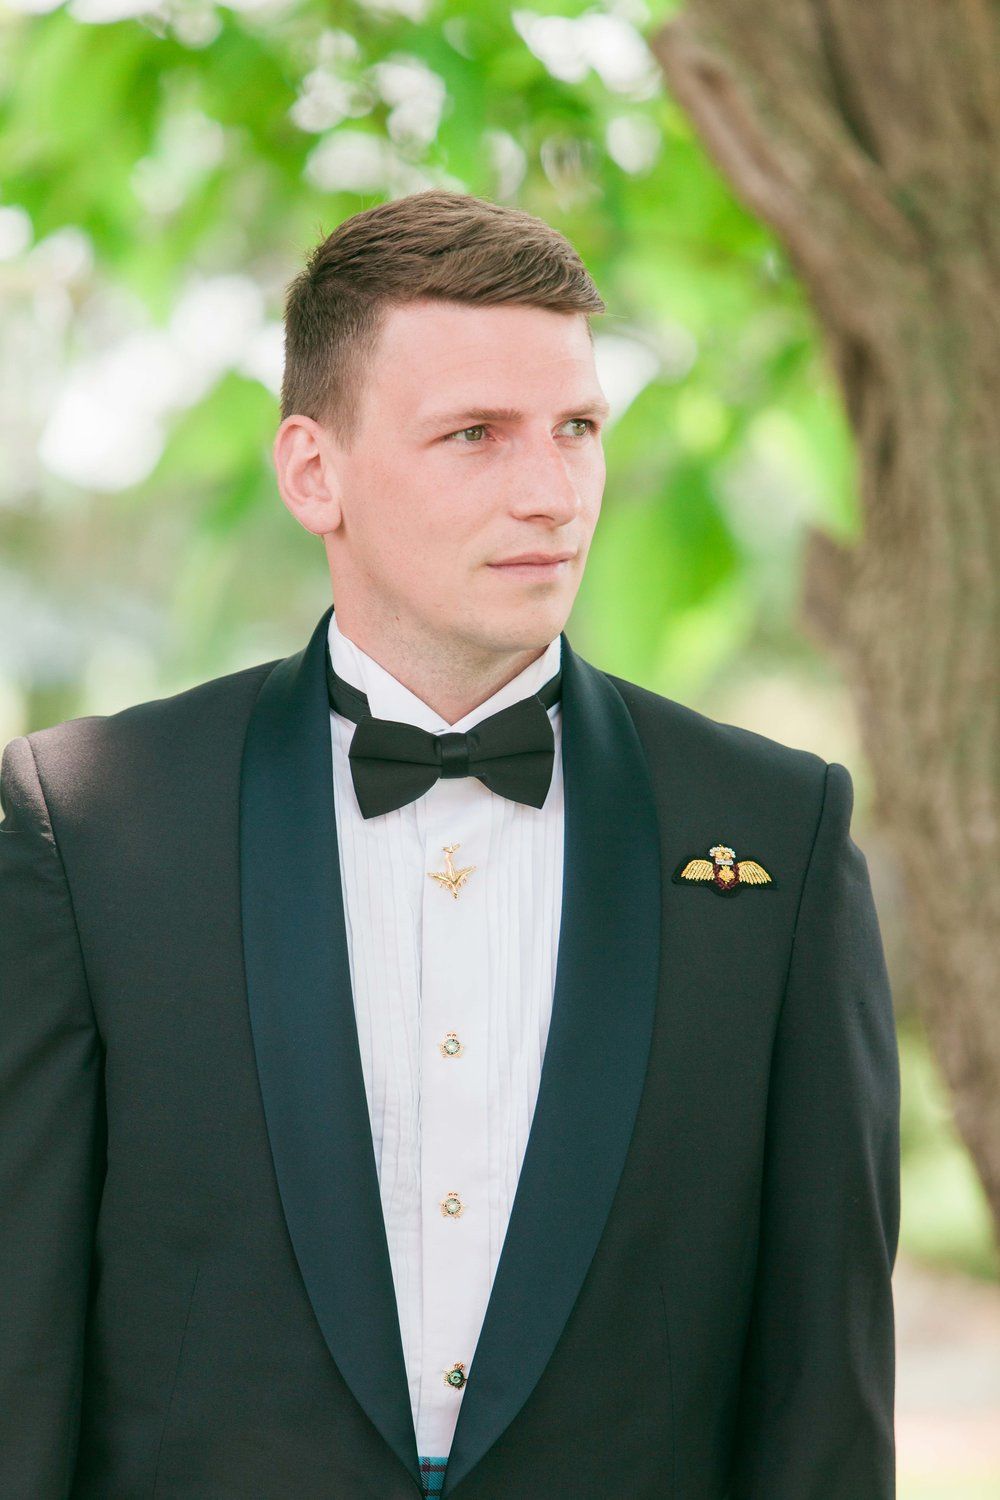 Groom in navy suit and bowtie